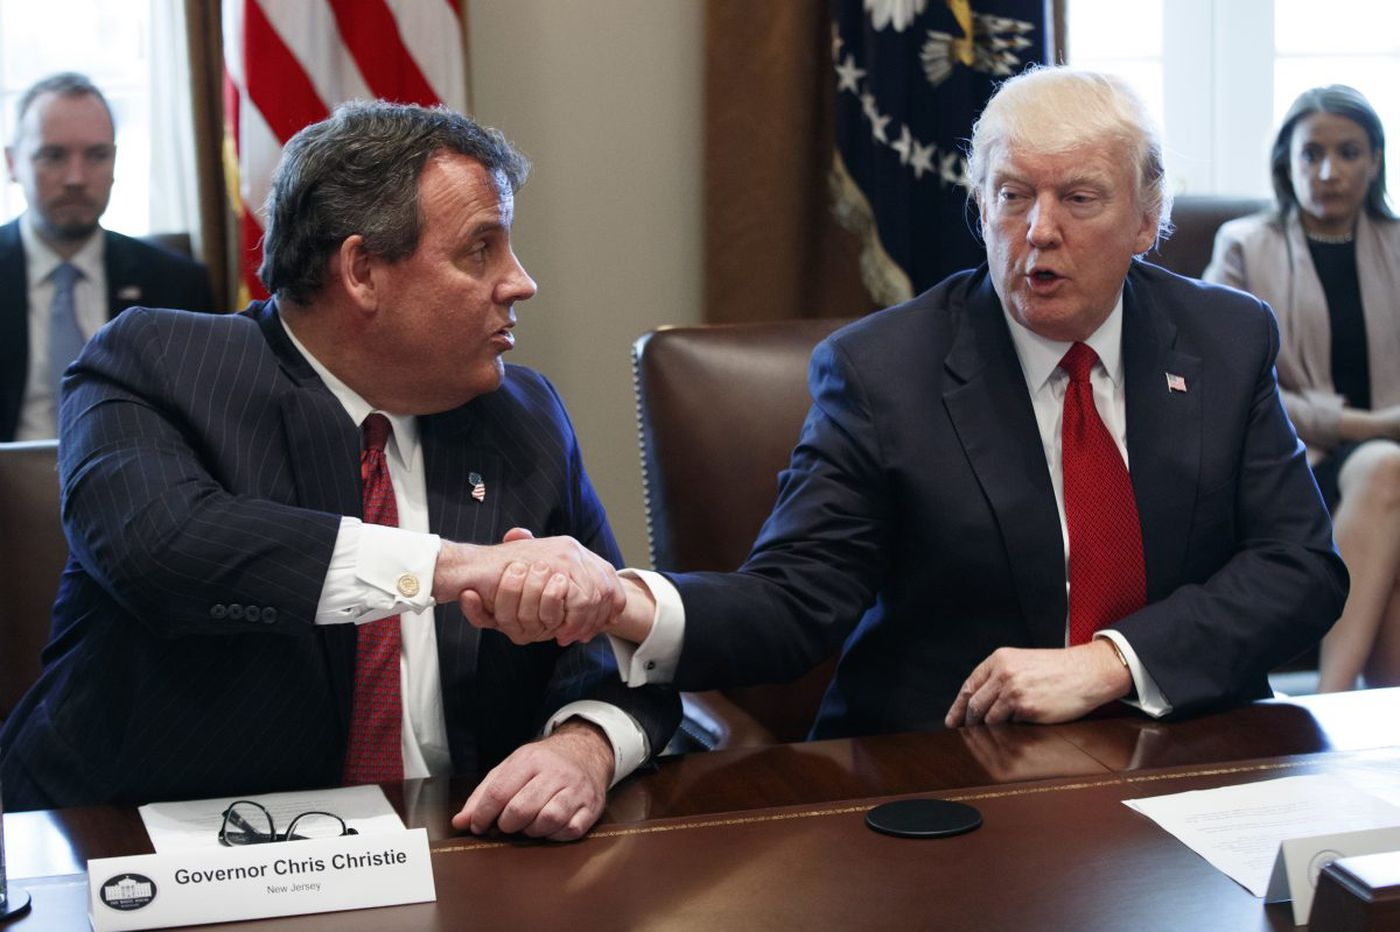 Christie vetoes bill aimed at blocking Trump's travel ban